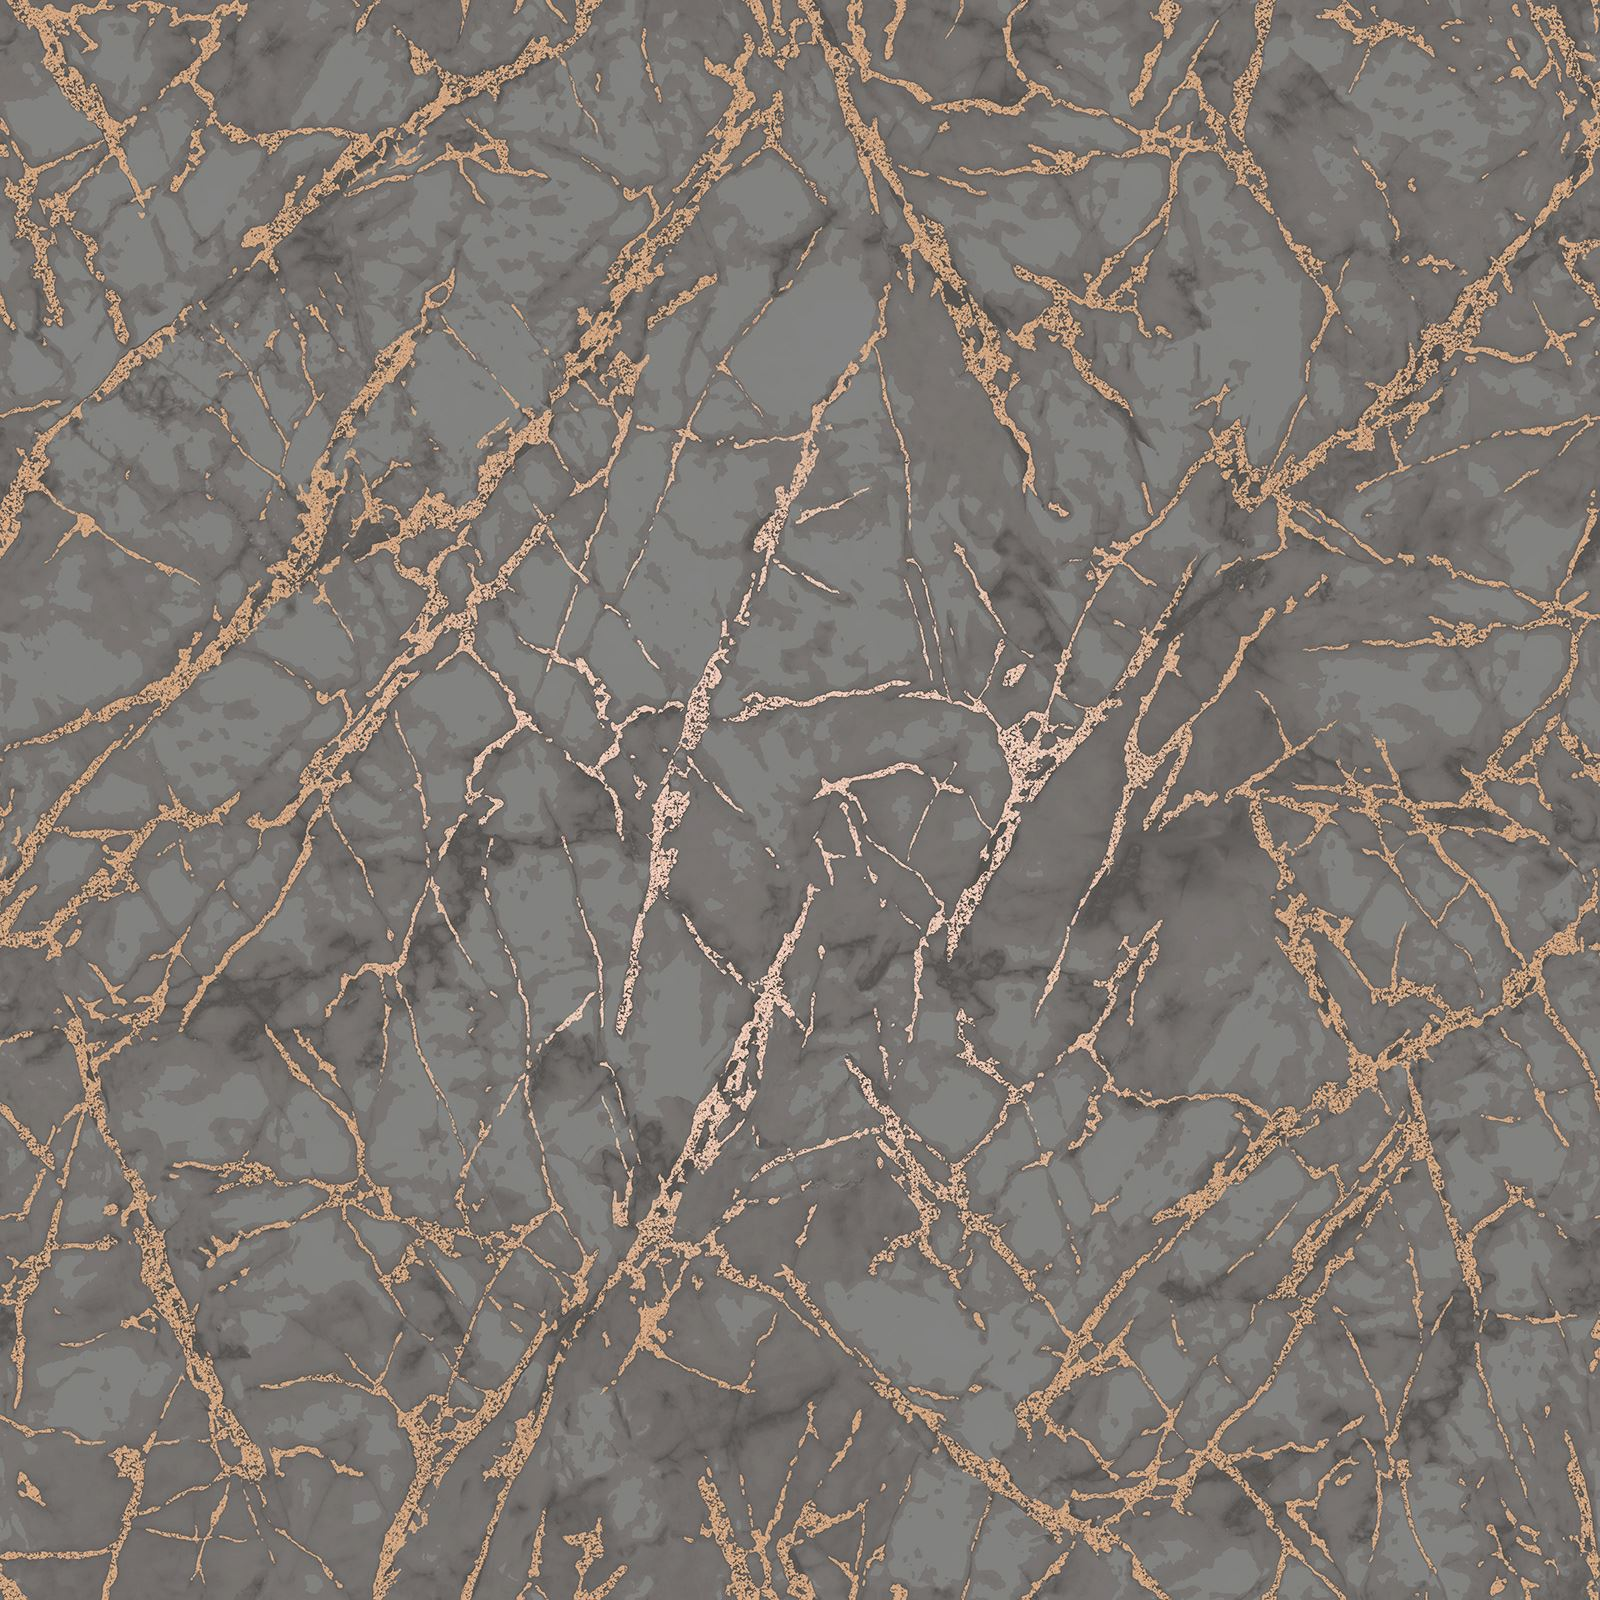 Cool Wallpaper Marble Plain - c75ee1bf-9982-4e02-ae83-b0a369163b09  You Should Have_35999.jpg